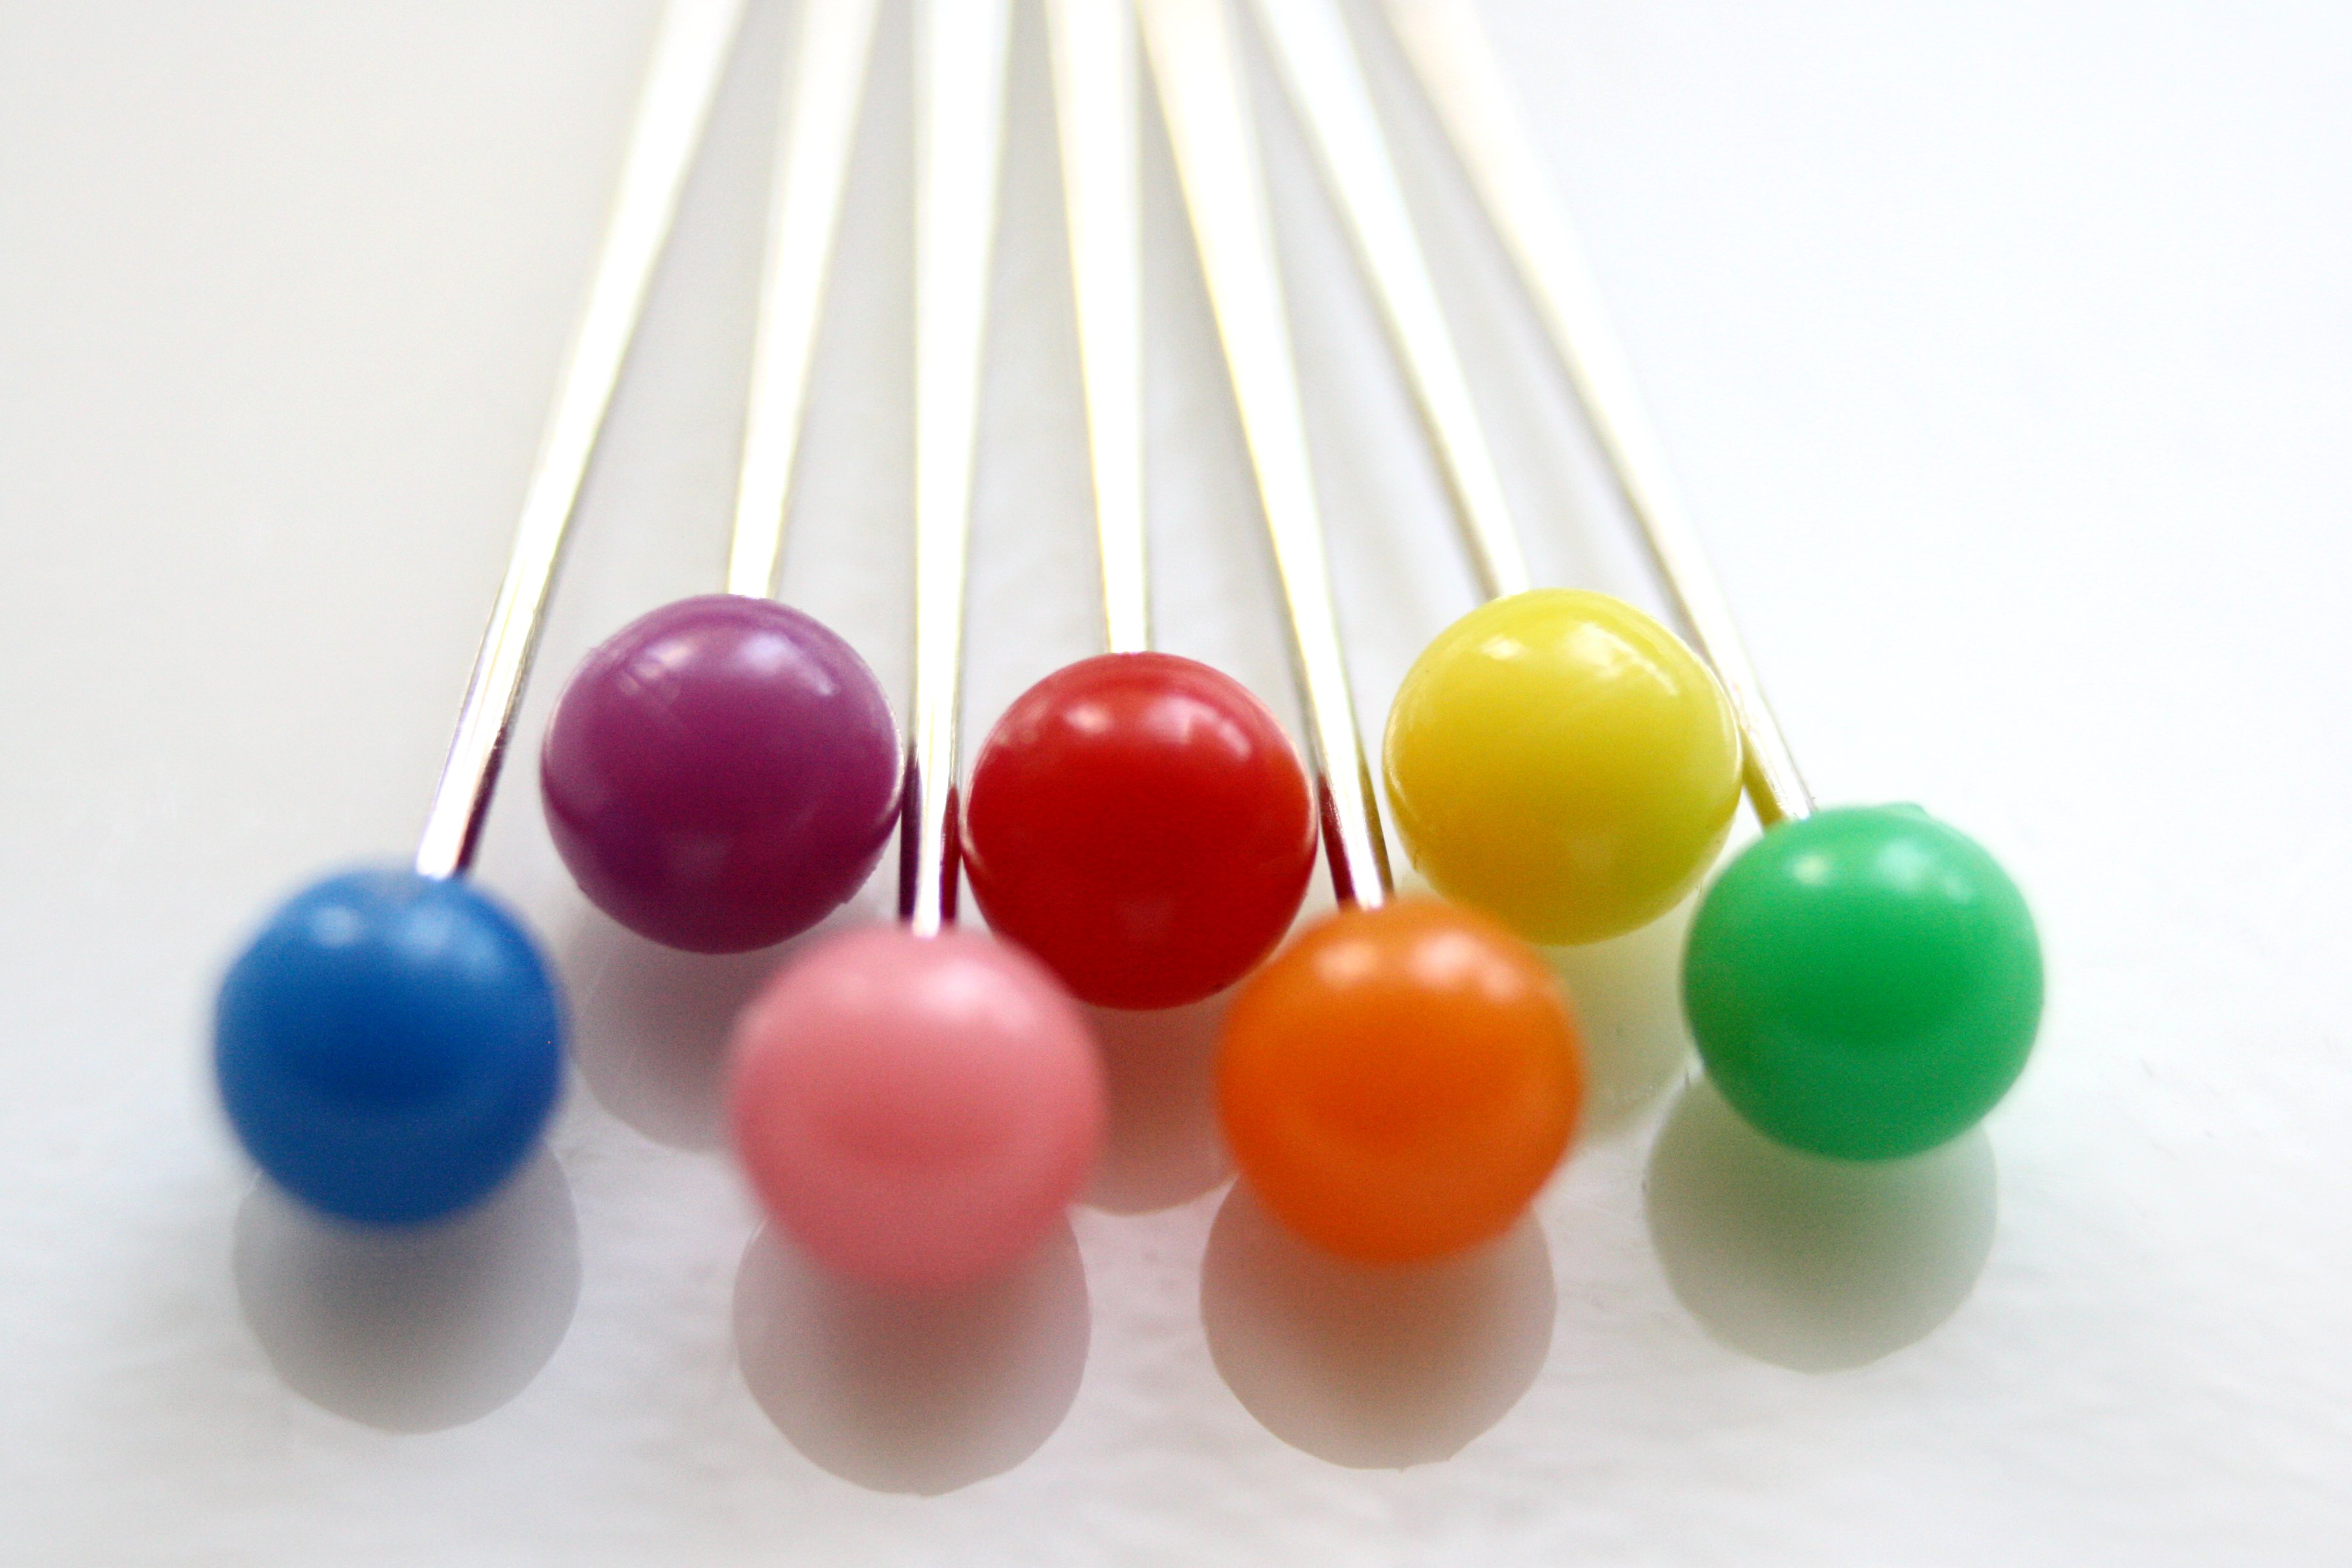 Rainbow Colored Sewing Straight Pins Macro Picture